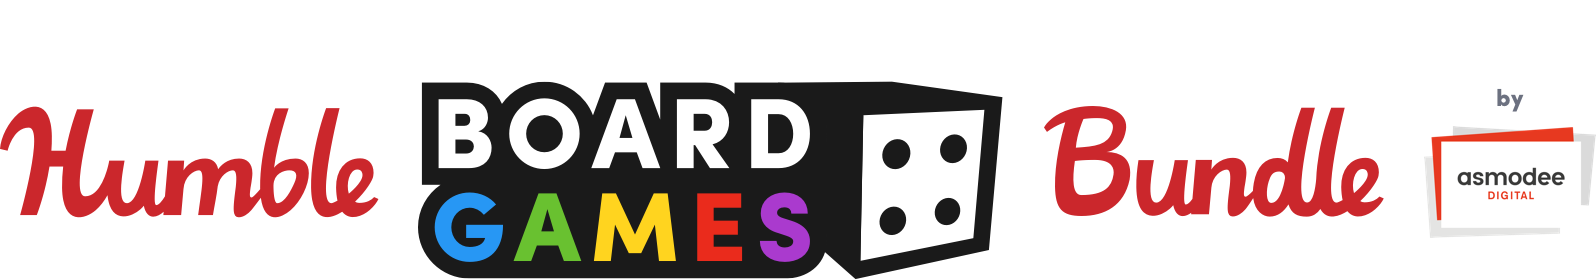 Humble More Board Games Bundle by Asmodee Digital